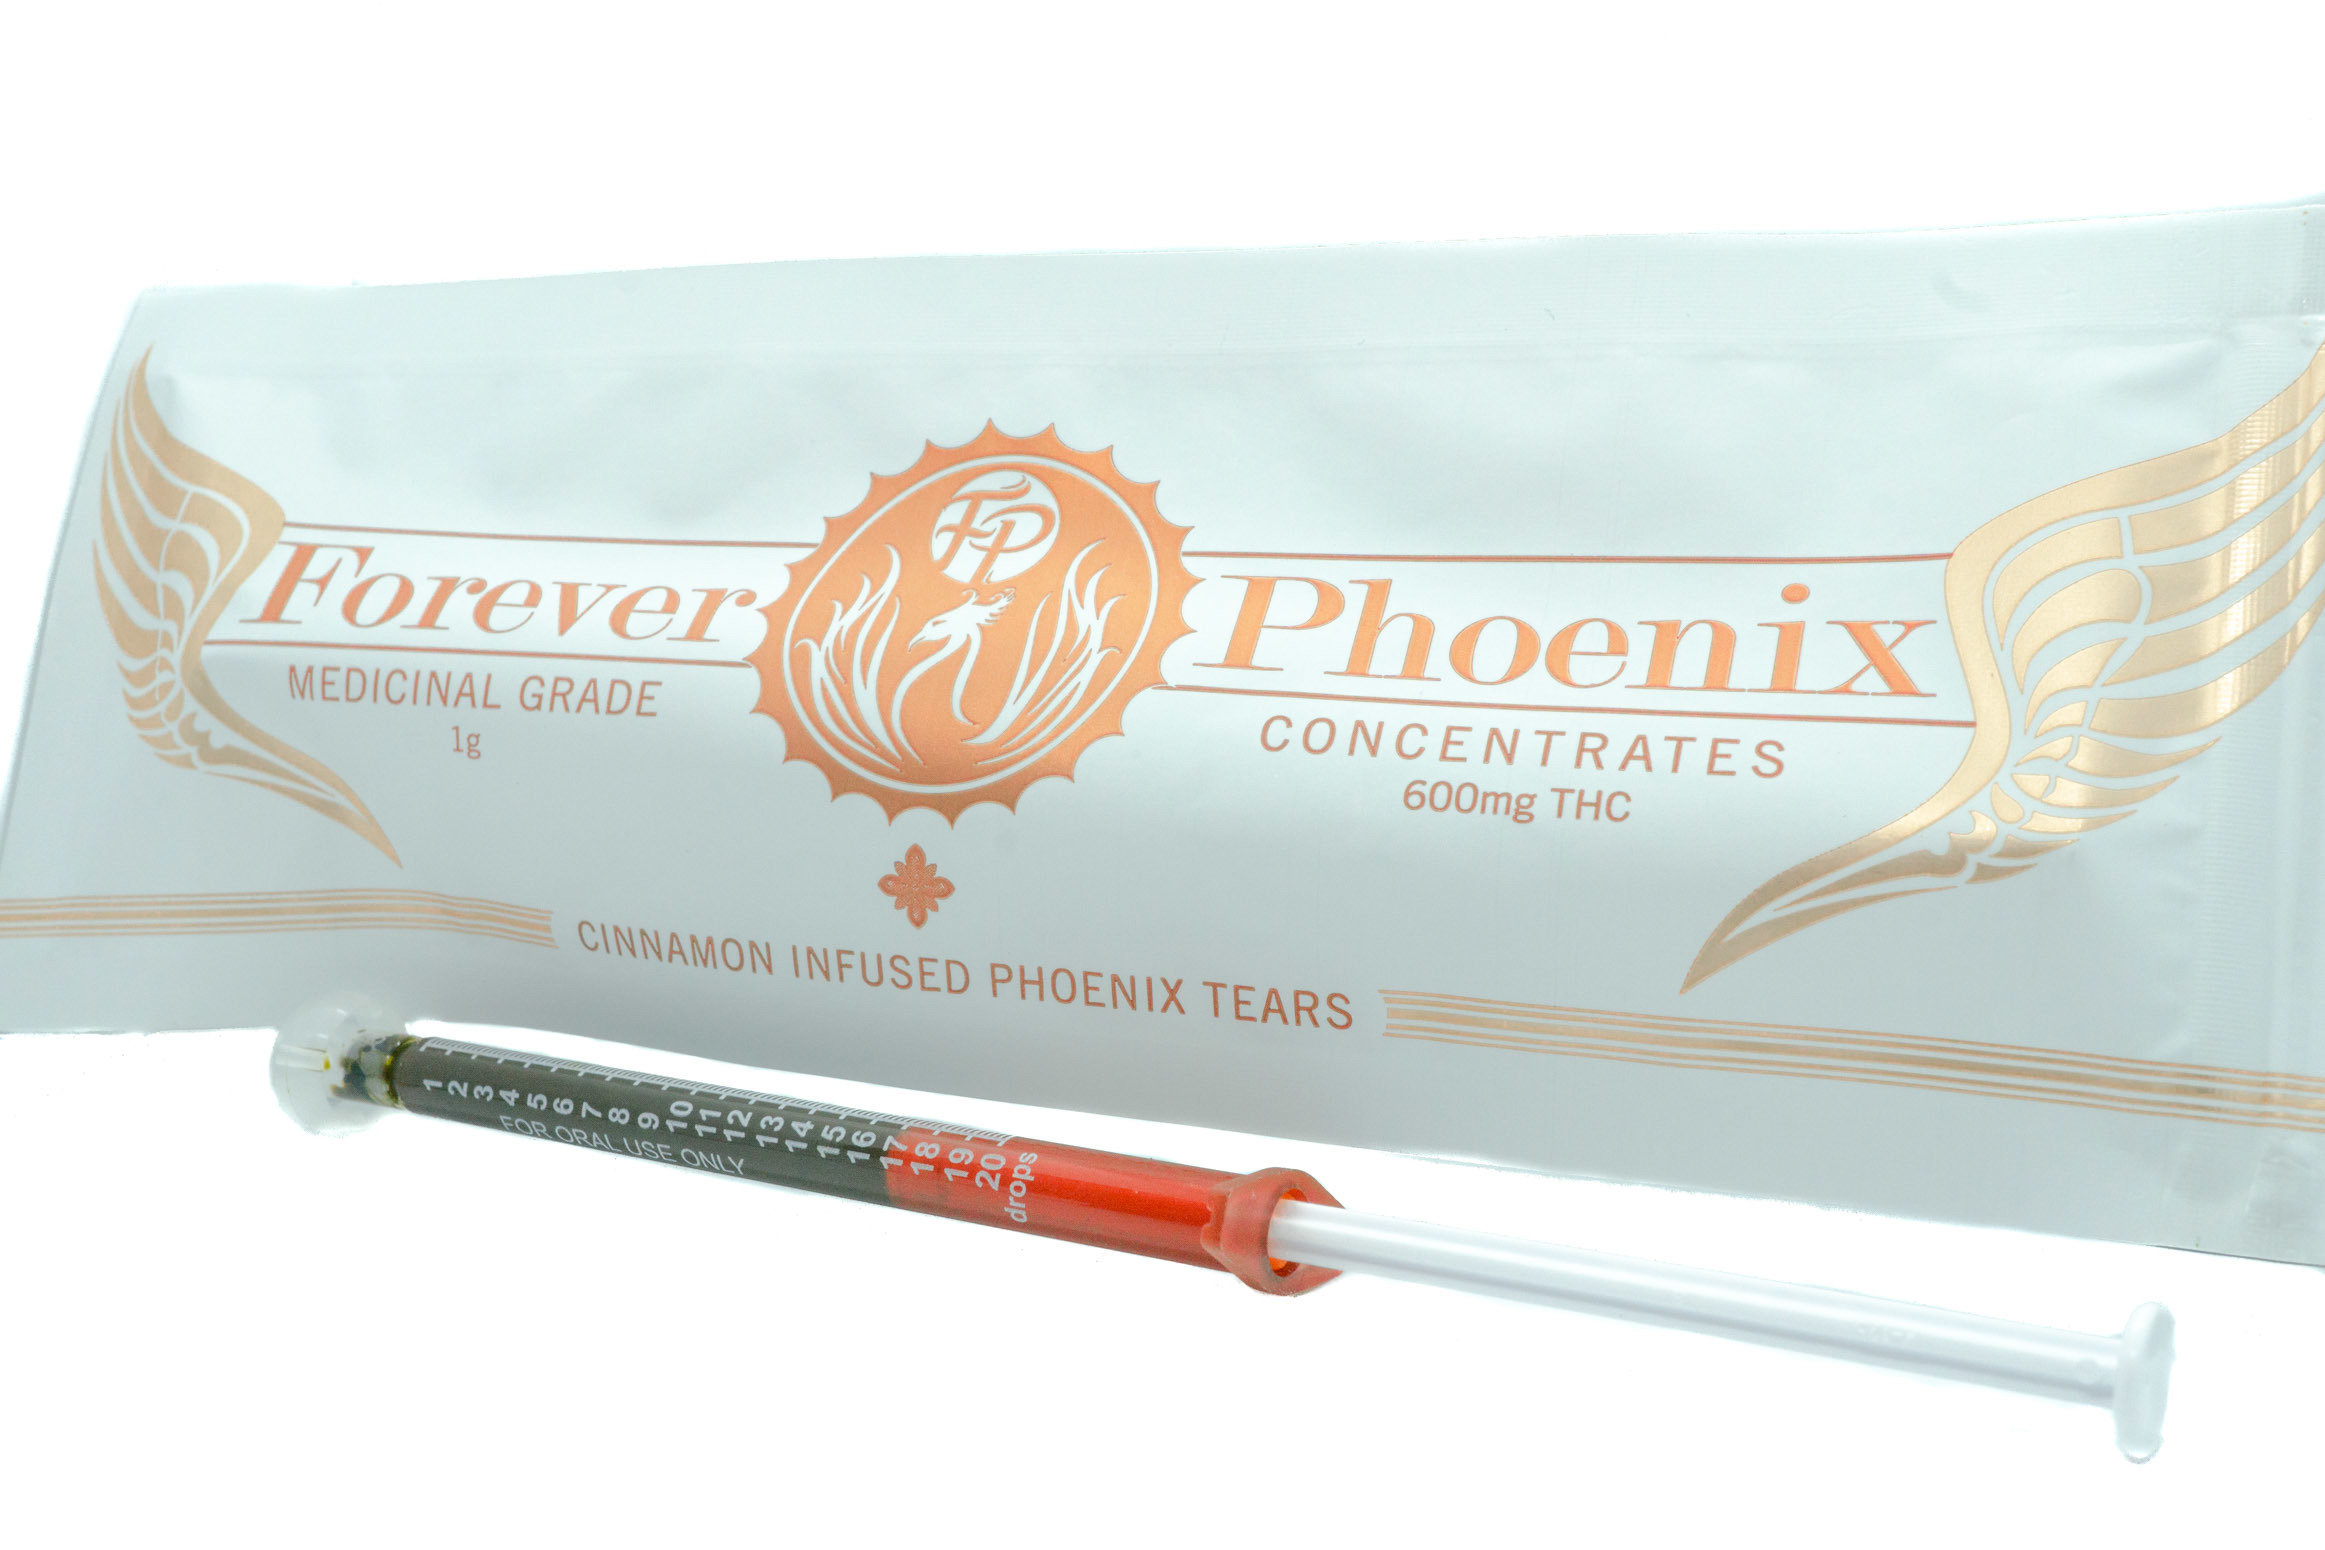 600mg Cinnamon Phoenix Tears AAAA+ by Forever Phoenix (Full Spectrum) 01197